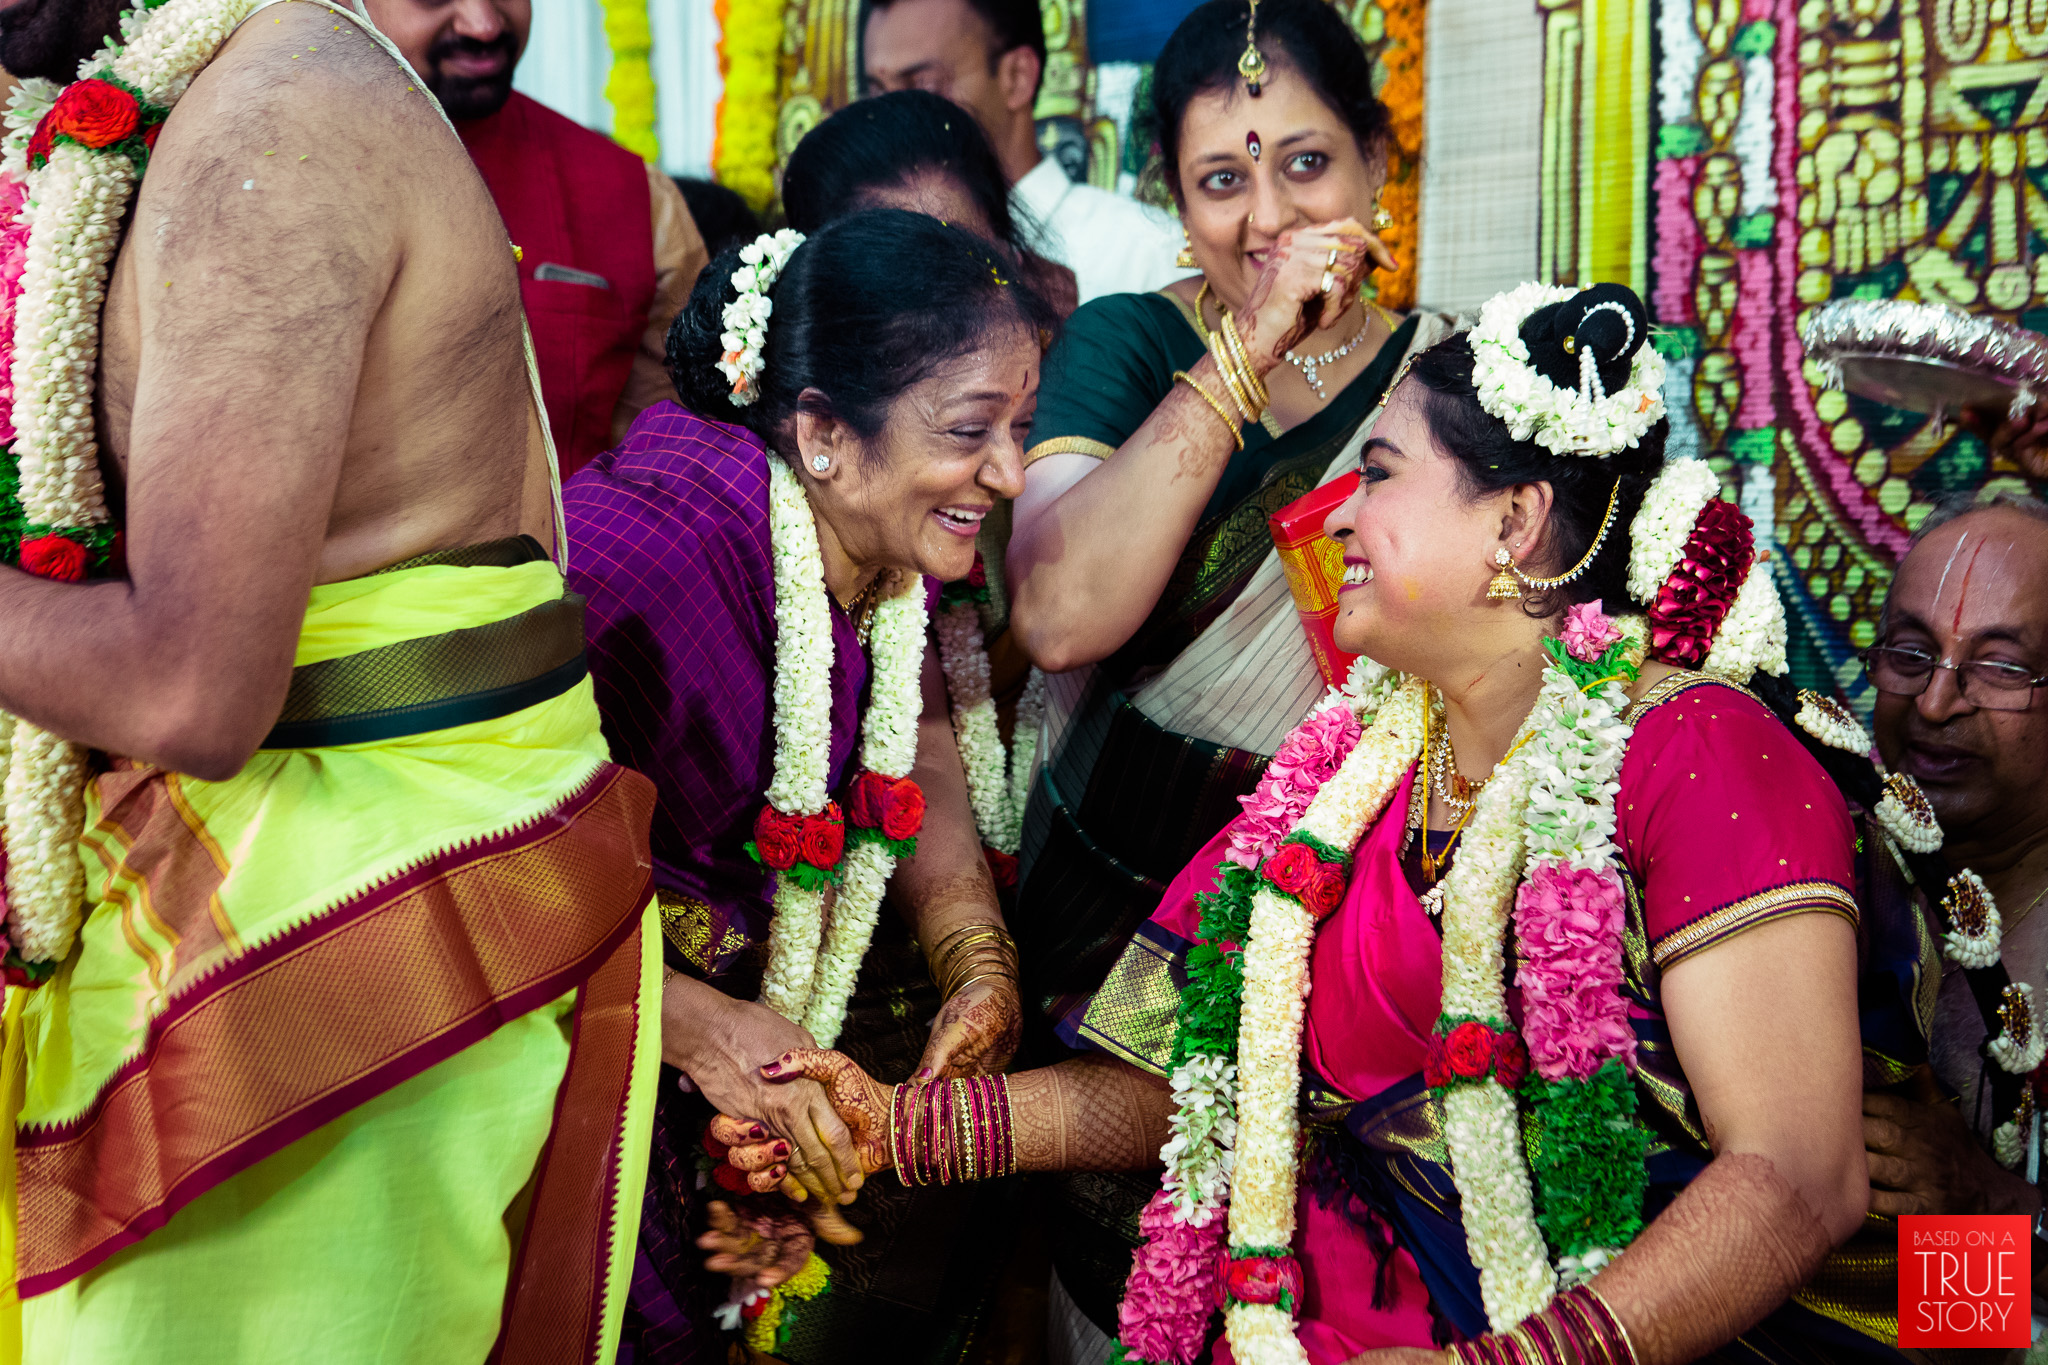 tambrahm-candid-wedding-photographer-bangalore-0042.jpg